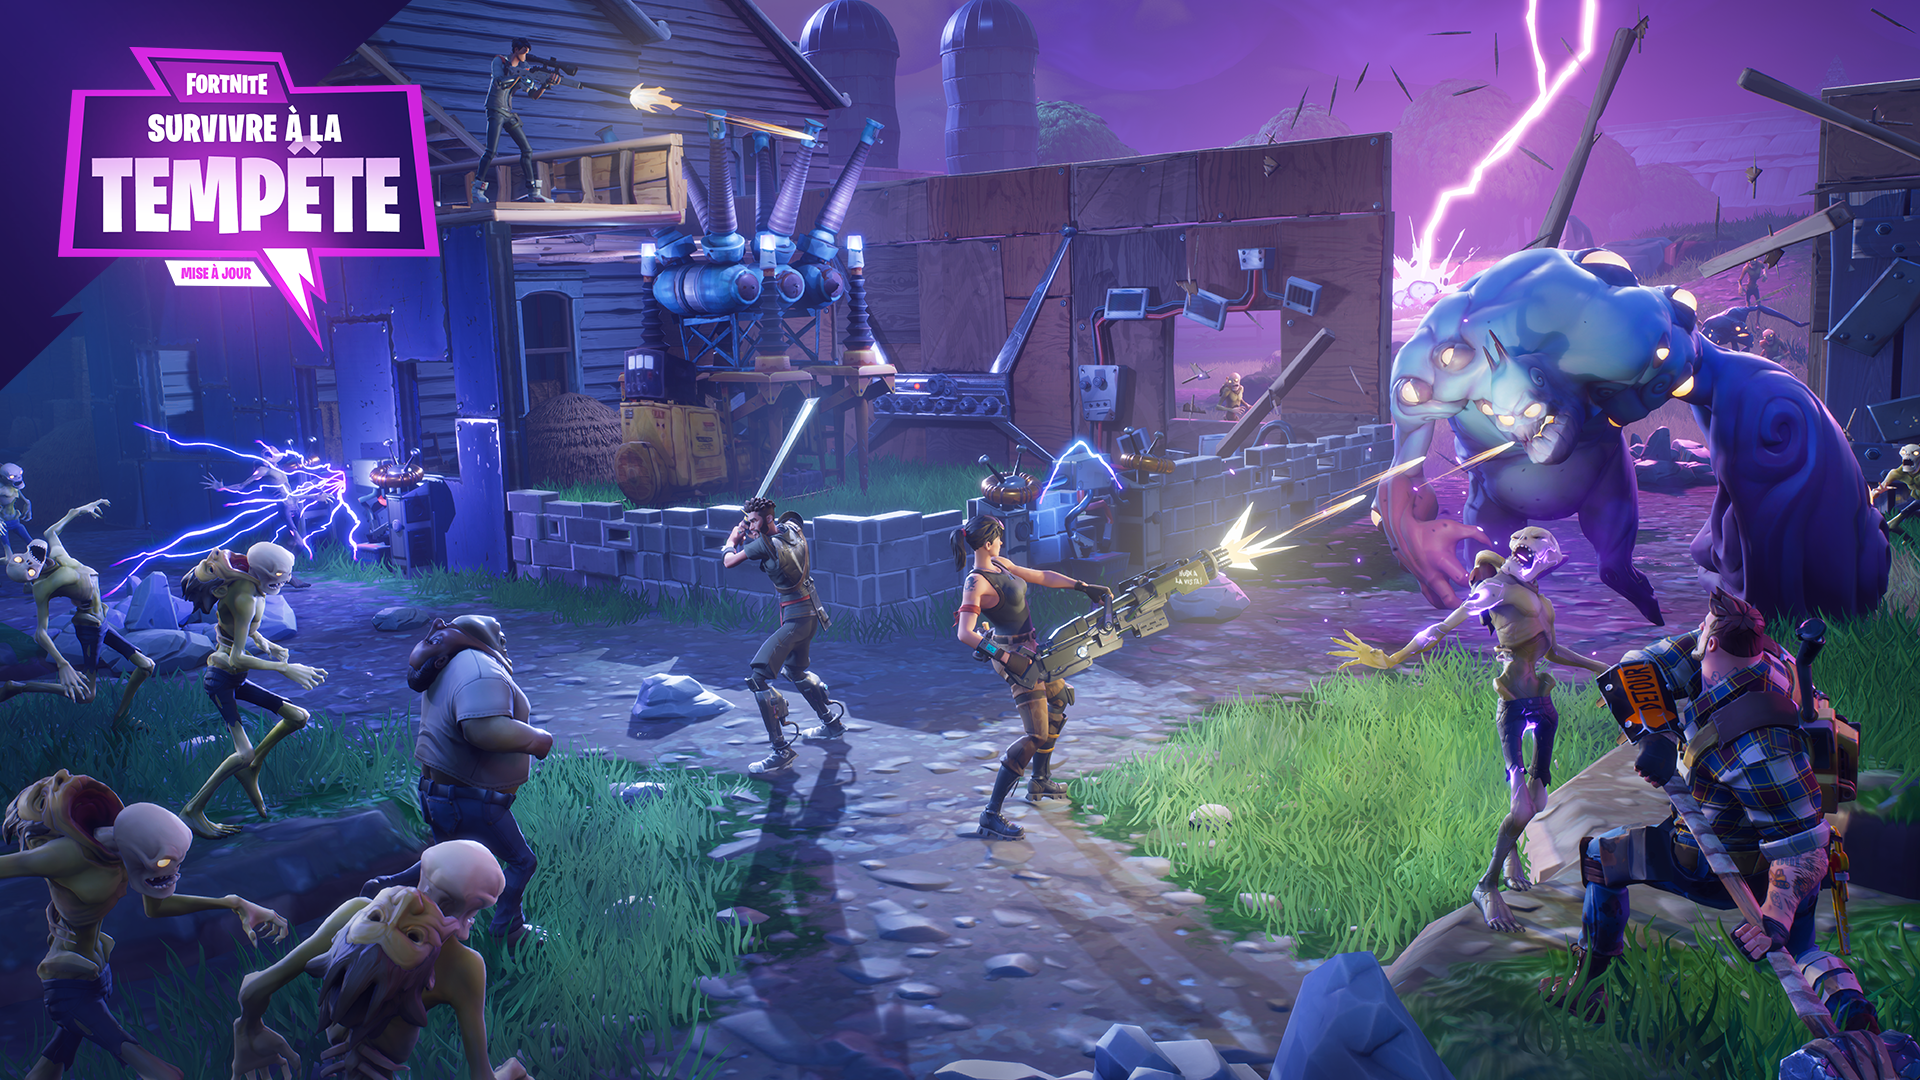 Fortnite%2Fblog%2Fsurvive-the-storm---release-notes%2FFR_Survivor-Mode-Gameplay-1920x1080-7fac3de0184cb9ed4323cf71f7d06f6db50a0b49